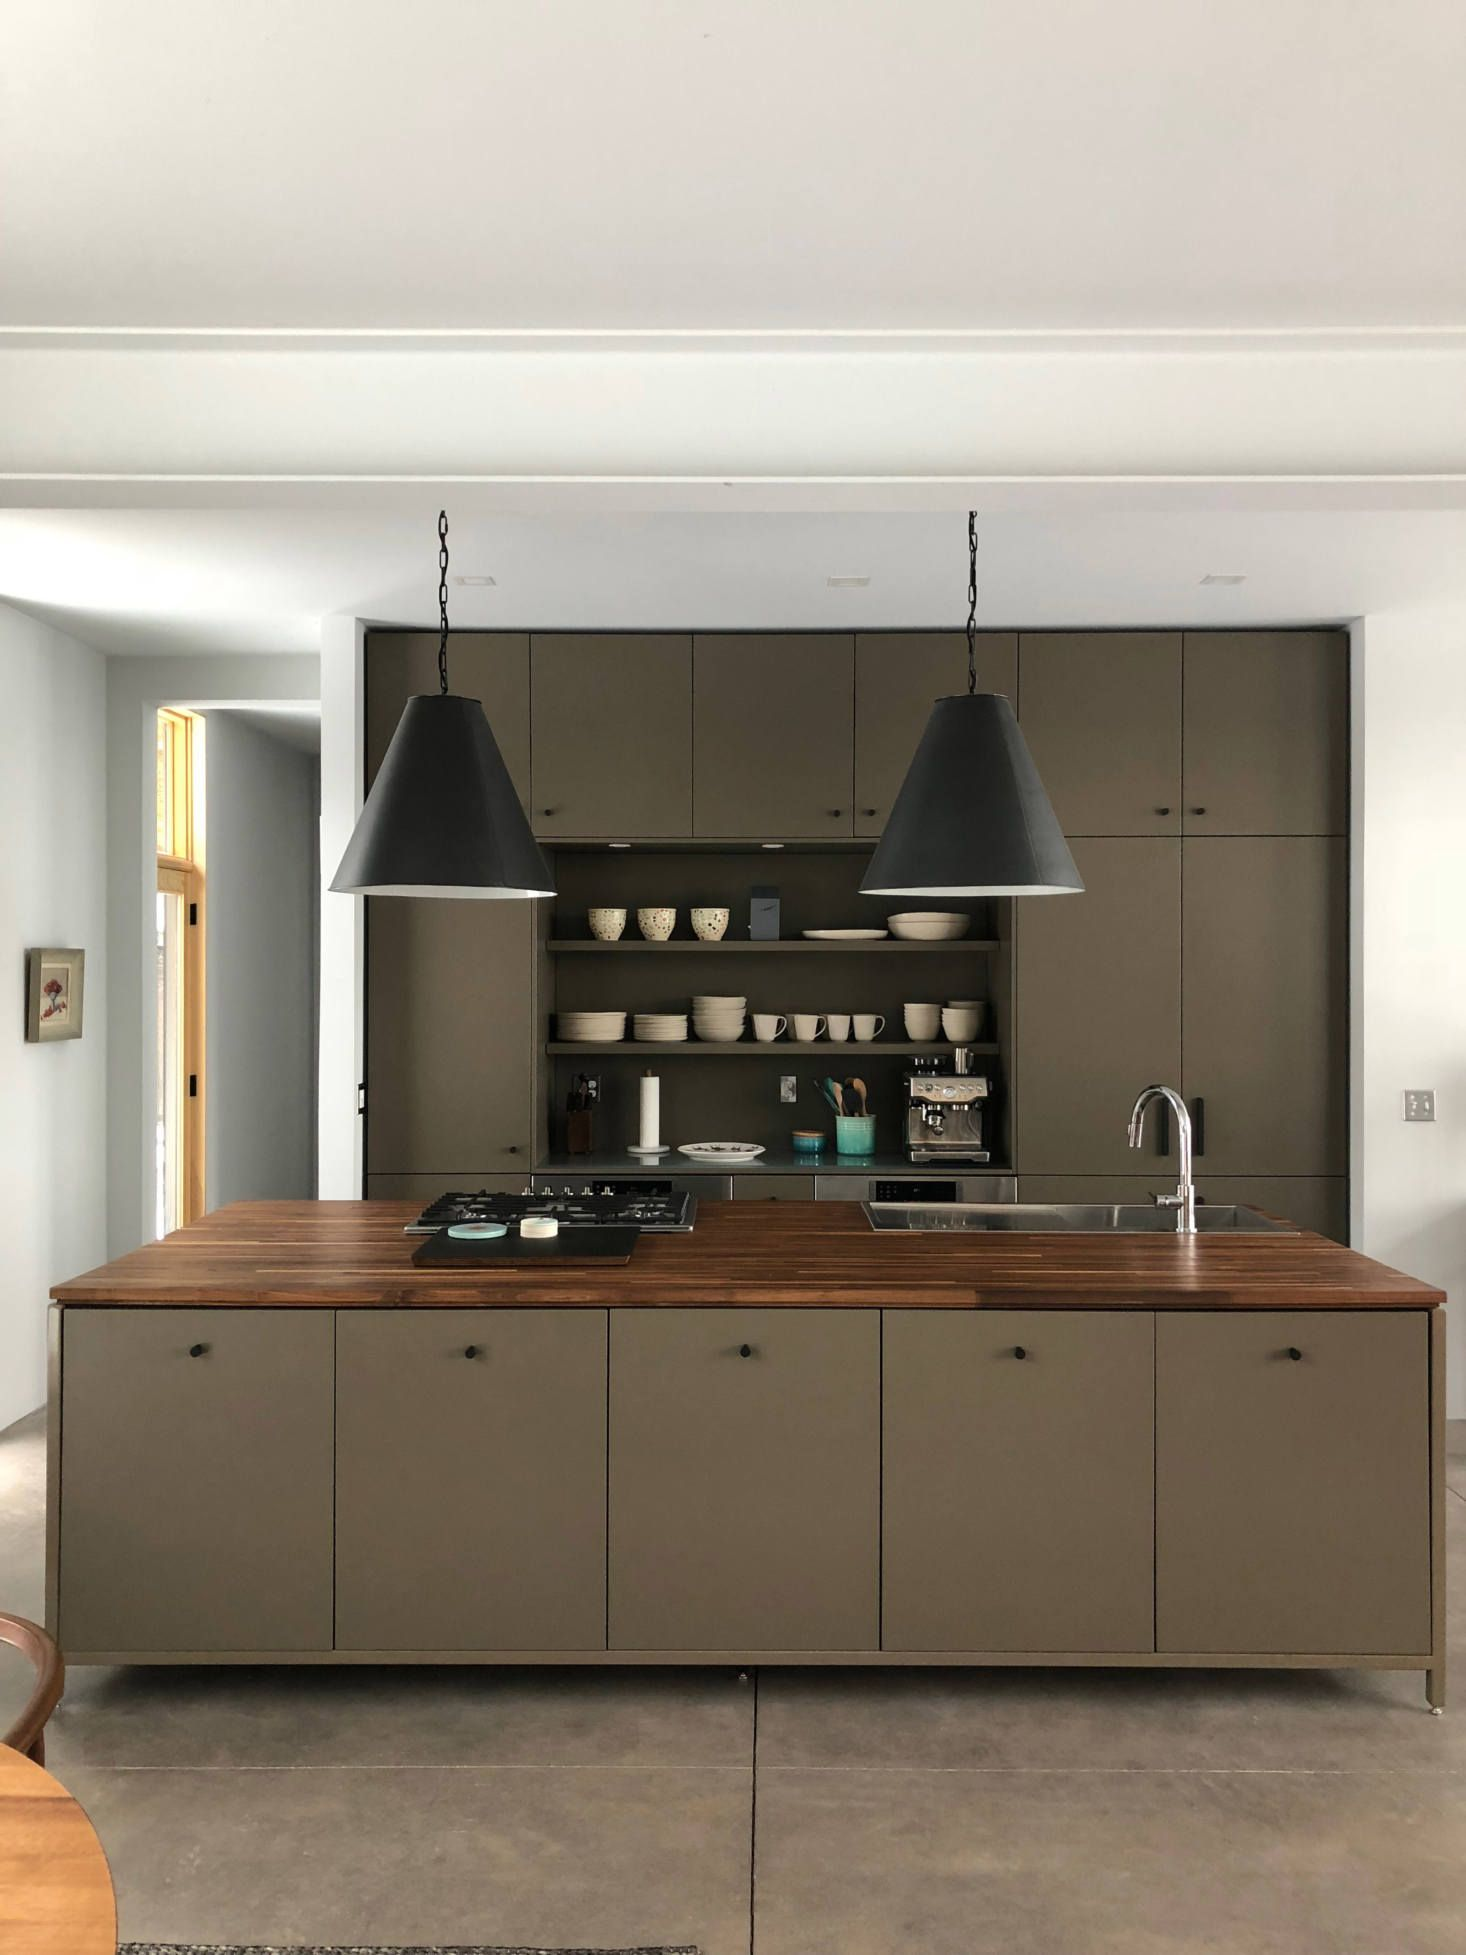 Hygge Supply: The Kit House Reimagined from Northern Michigan | home ...